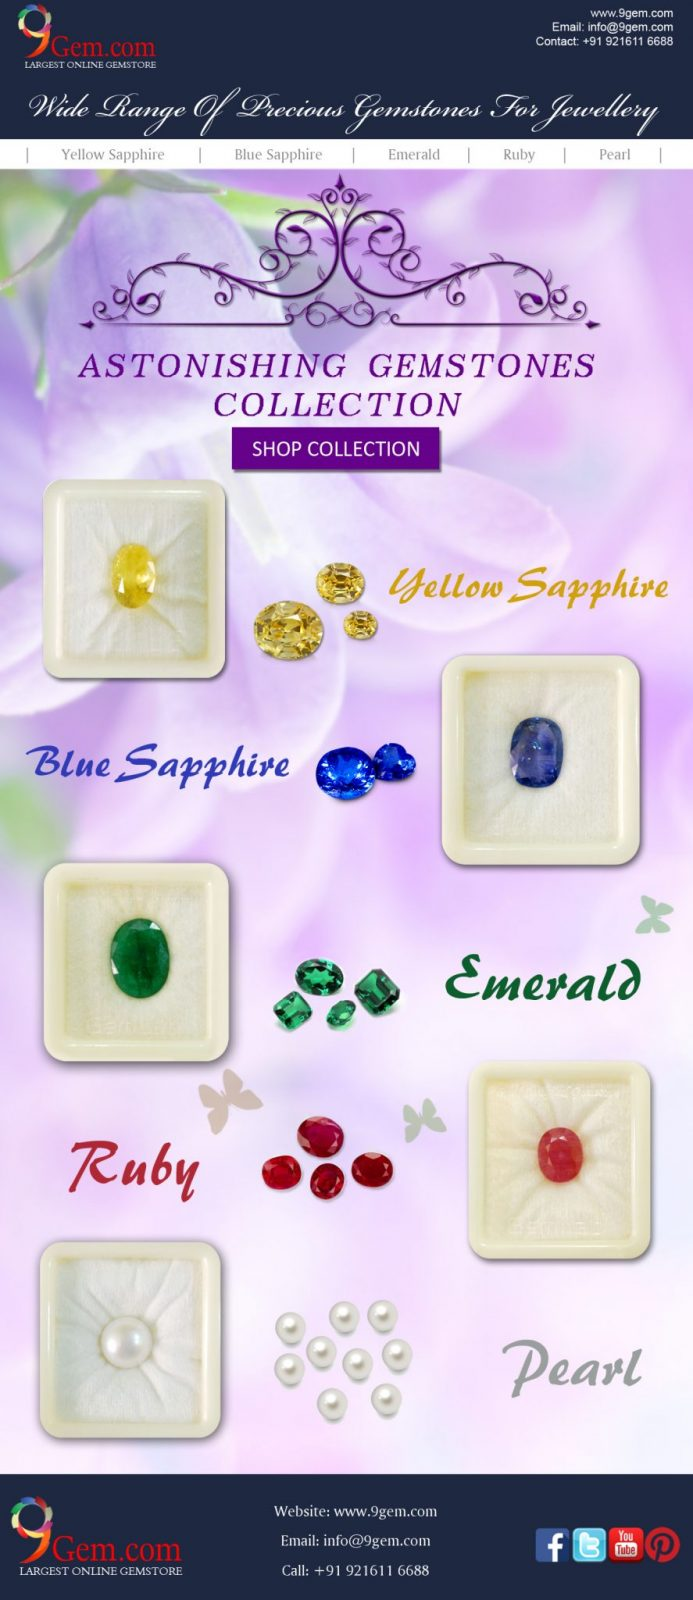 precious gemstone collection at 9Gem